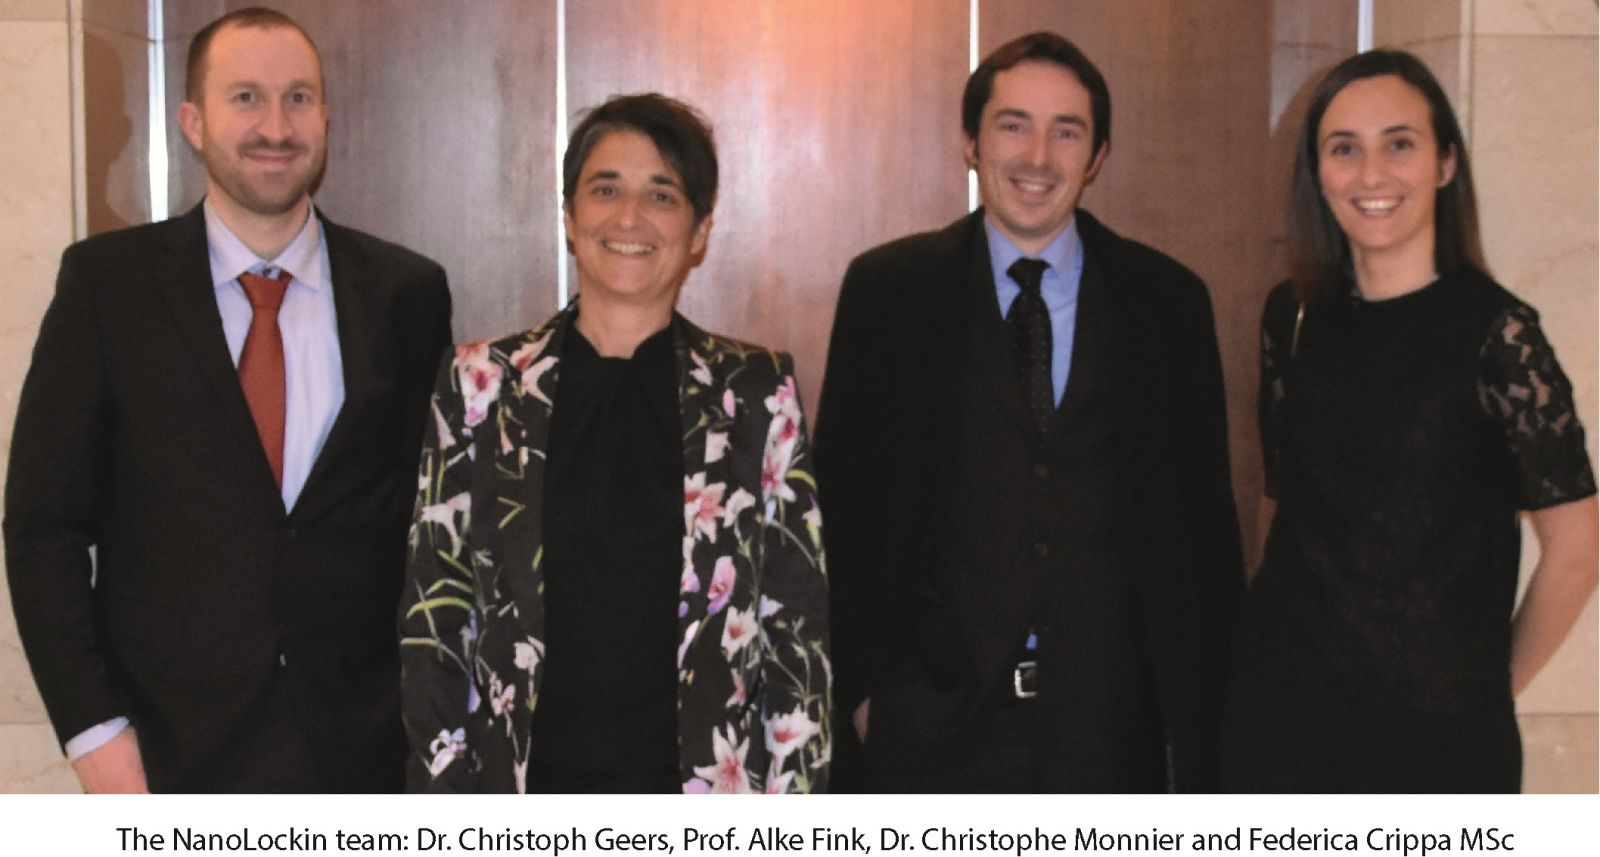 The NanoLockin team: Dr. Christoph Geers, Prof. Alke Fink, Dr. Christophe Monnier and Federica Crippa MSc